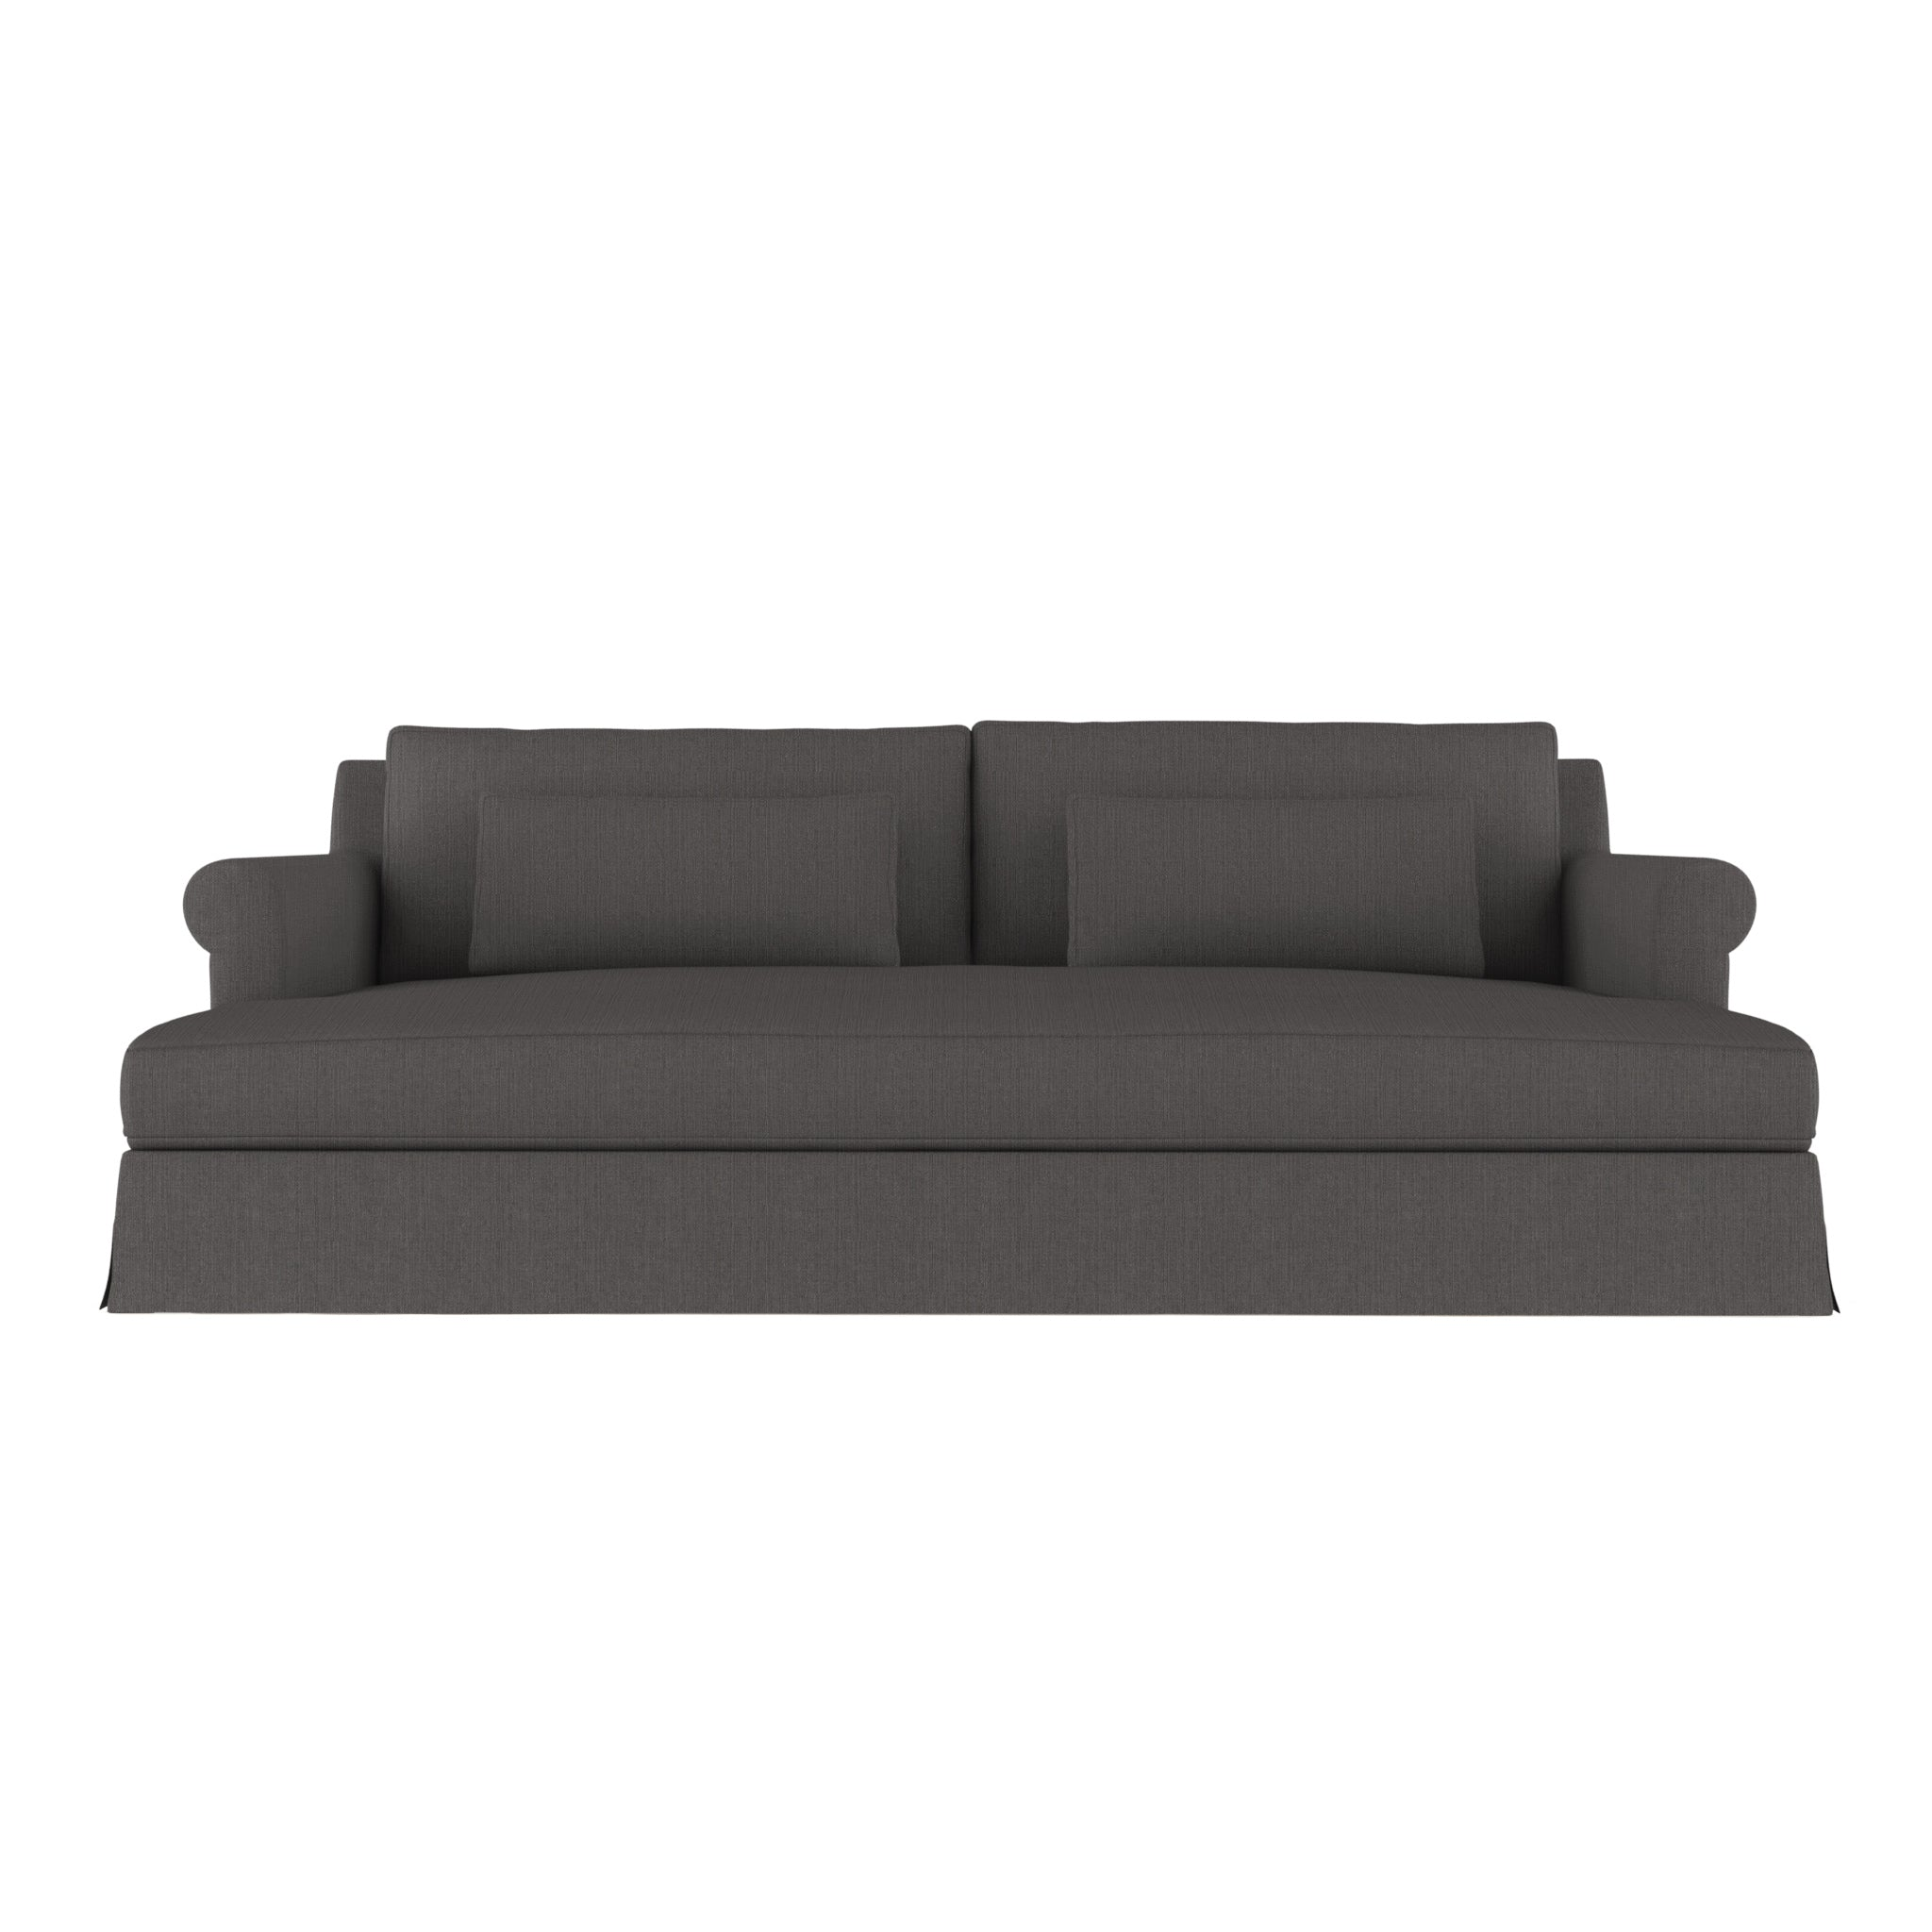 Ludlow Daybed - Graphite Box Weave Linen